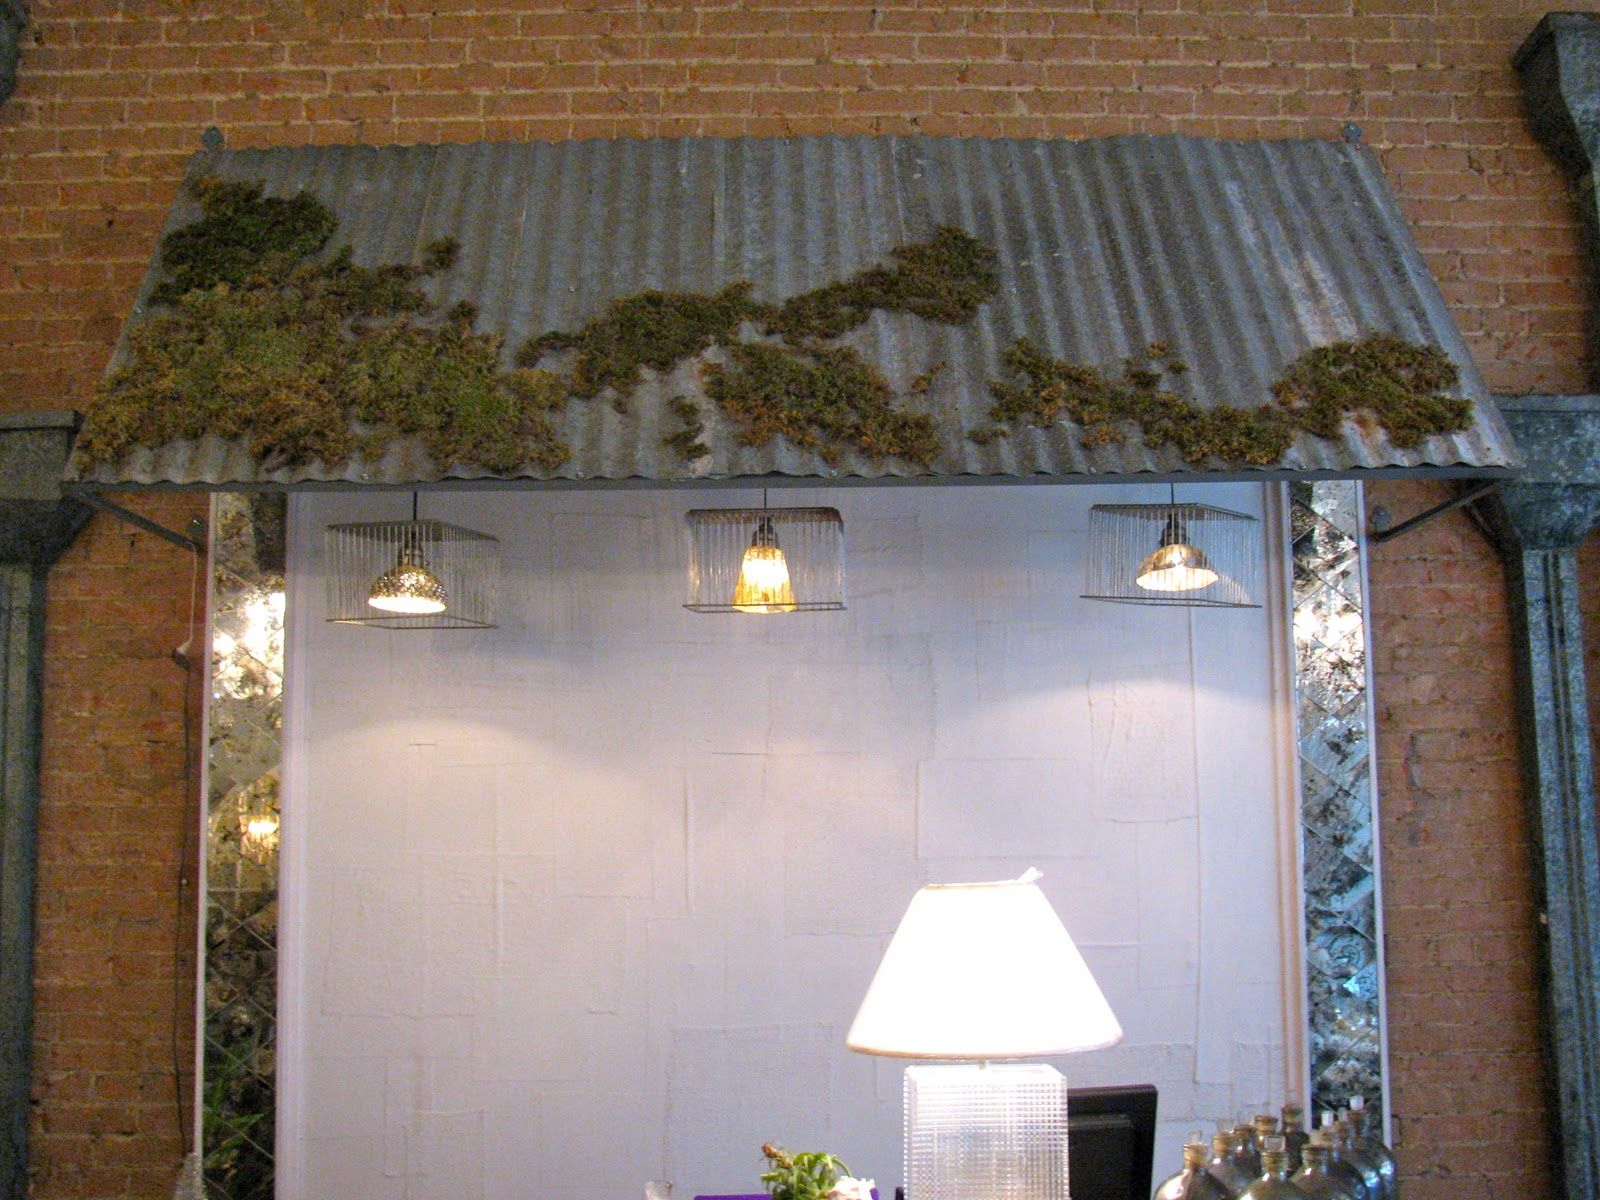 rusty tin awnings - Yahoo! Search Results | Awnings ...